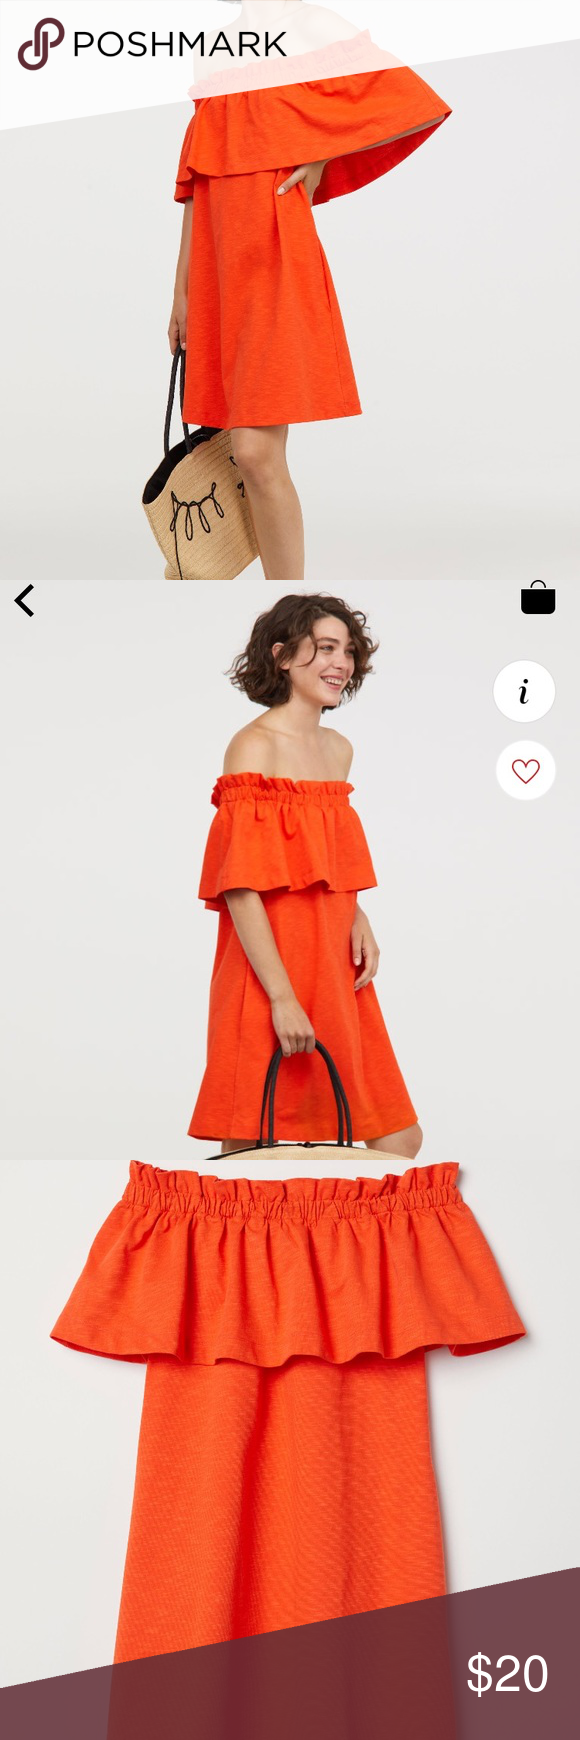 a43216562c12 H&M Off The Shoulder Dress Orange Off The Shoulder Dress. Only worn once,  brand new condition. H&M Dresses Mini